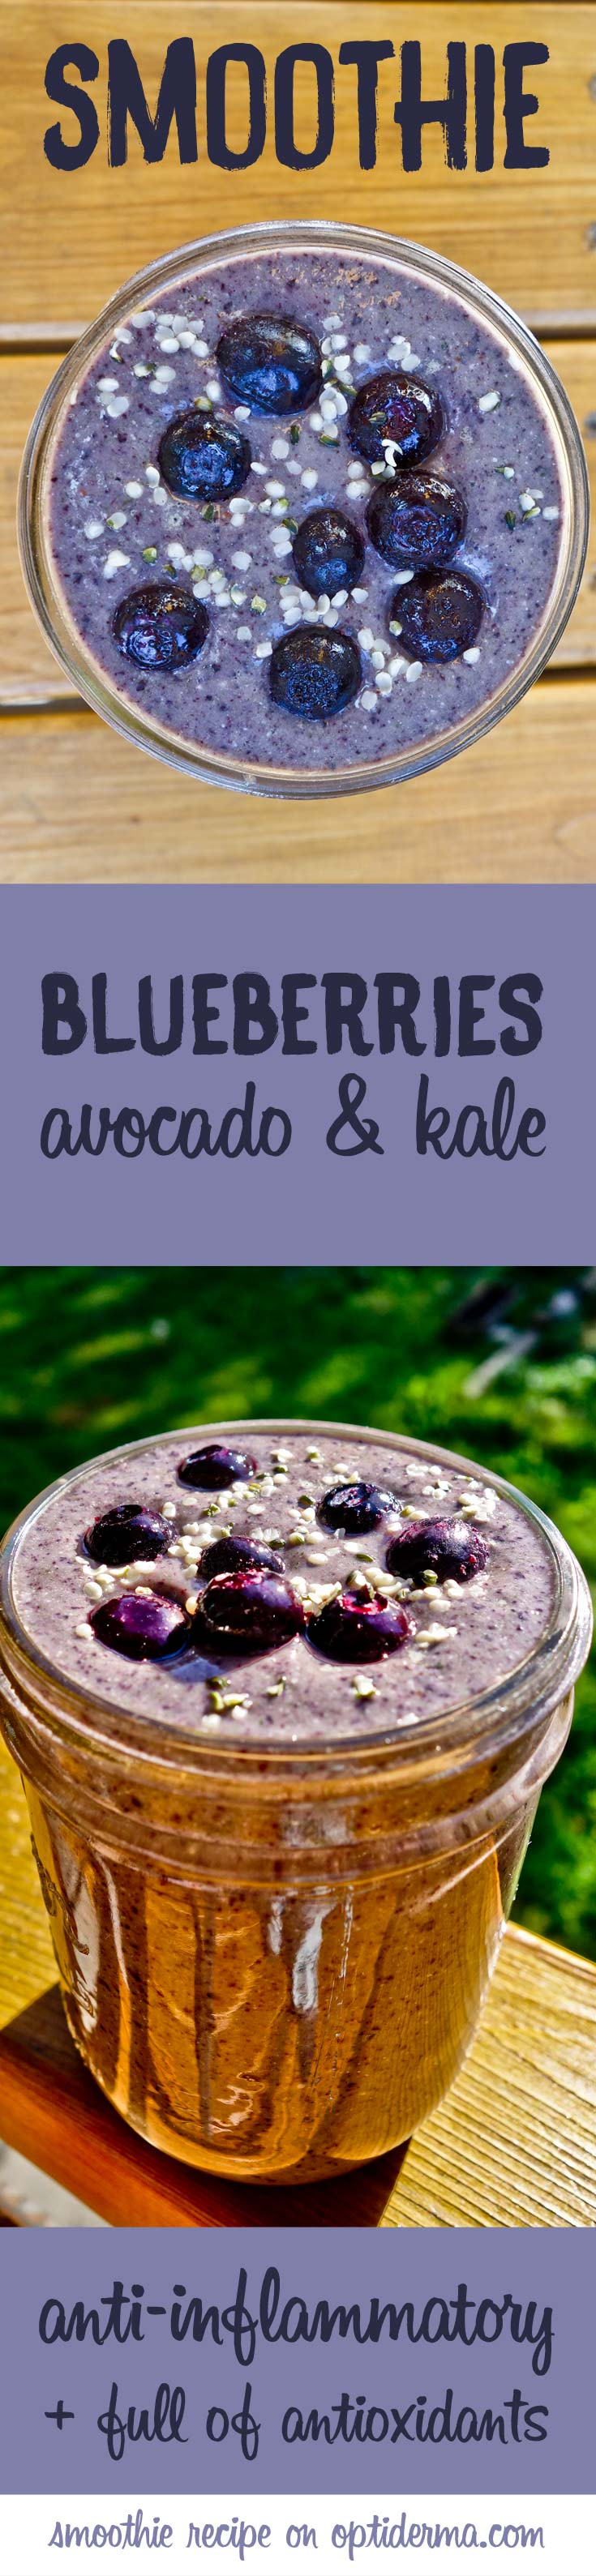 Anti-inflammatory smoothie: blueberries, avocado, kale